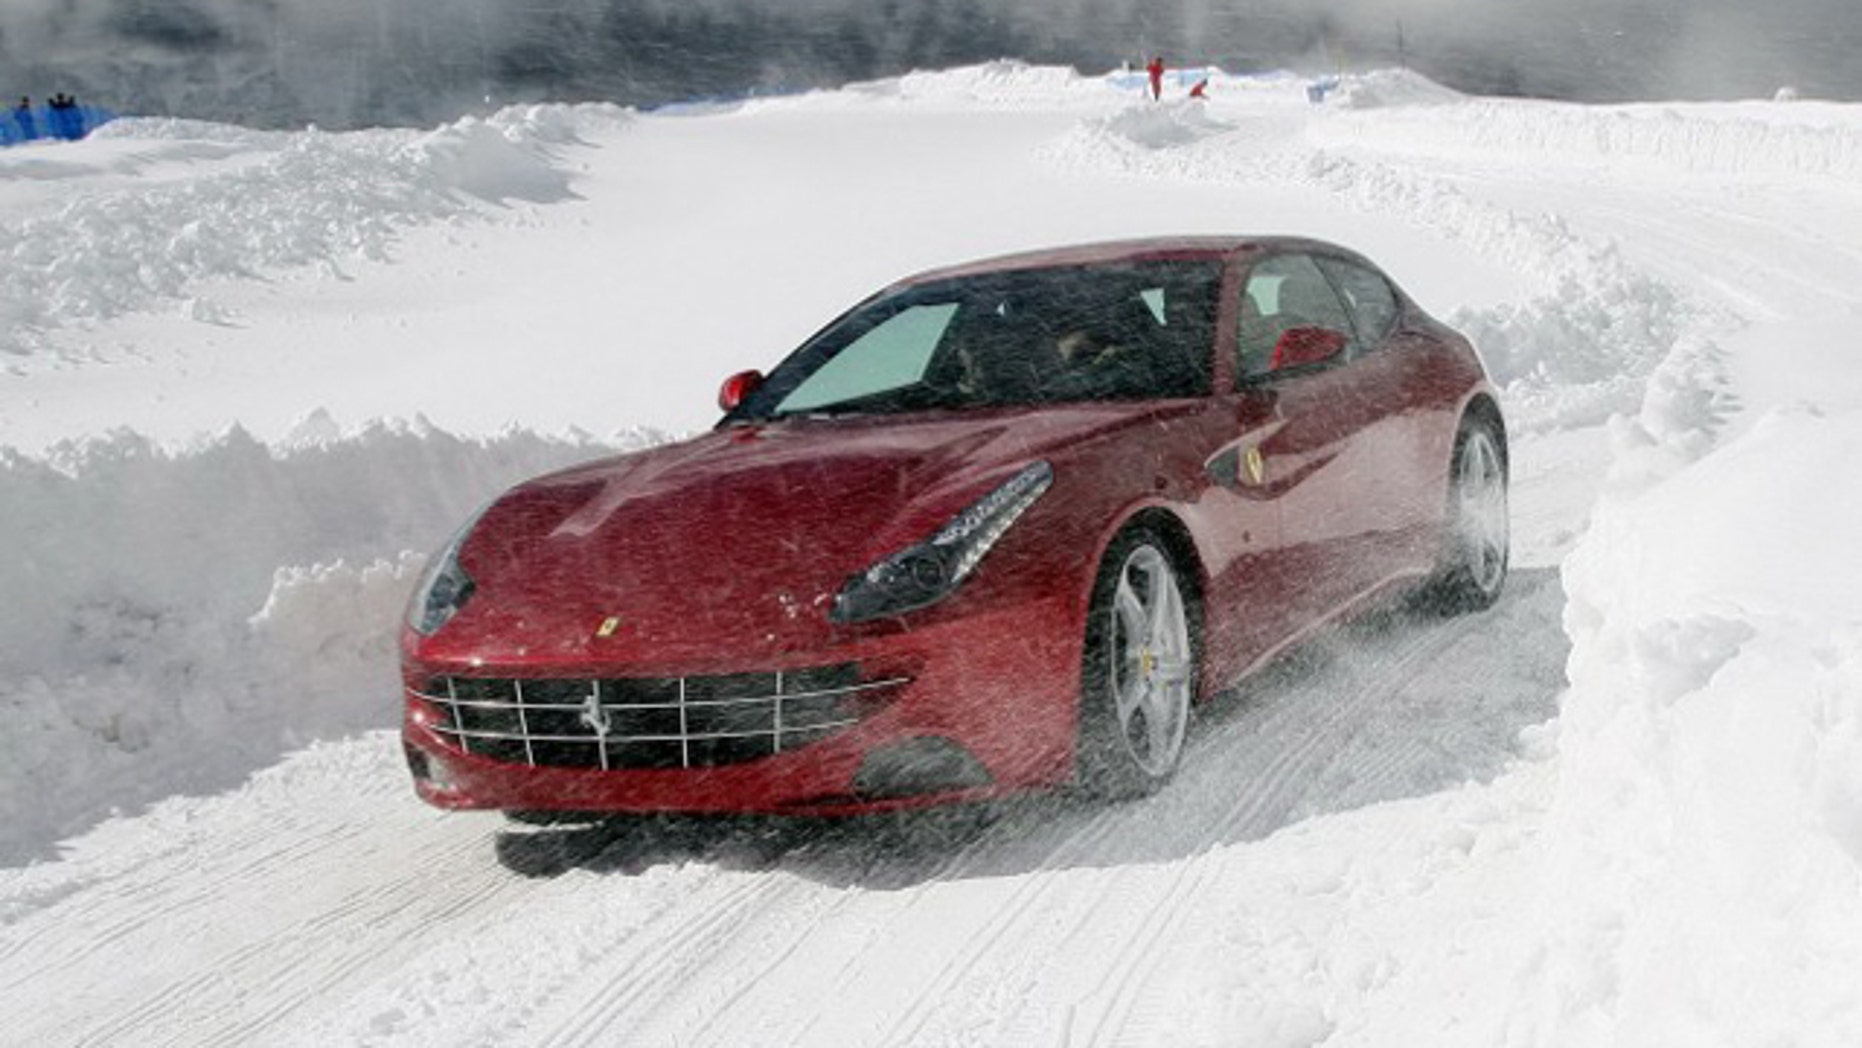 Holiday Gift Guide: Ultimate Winter Driving Experiences